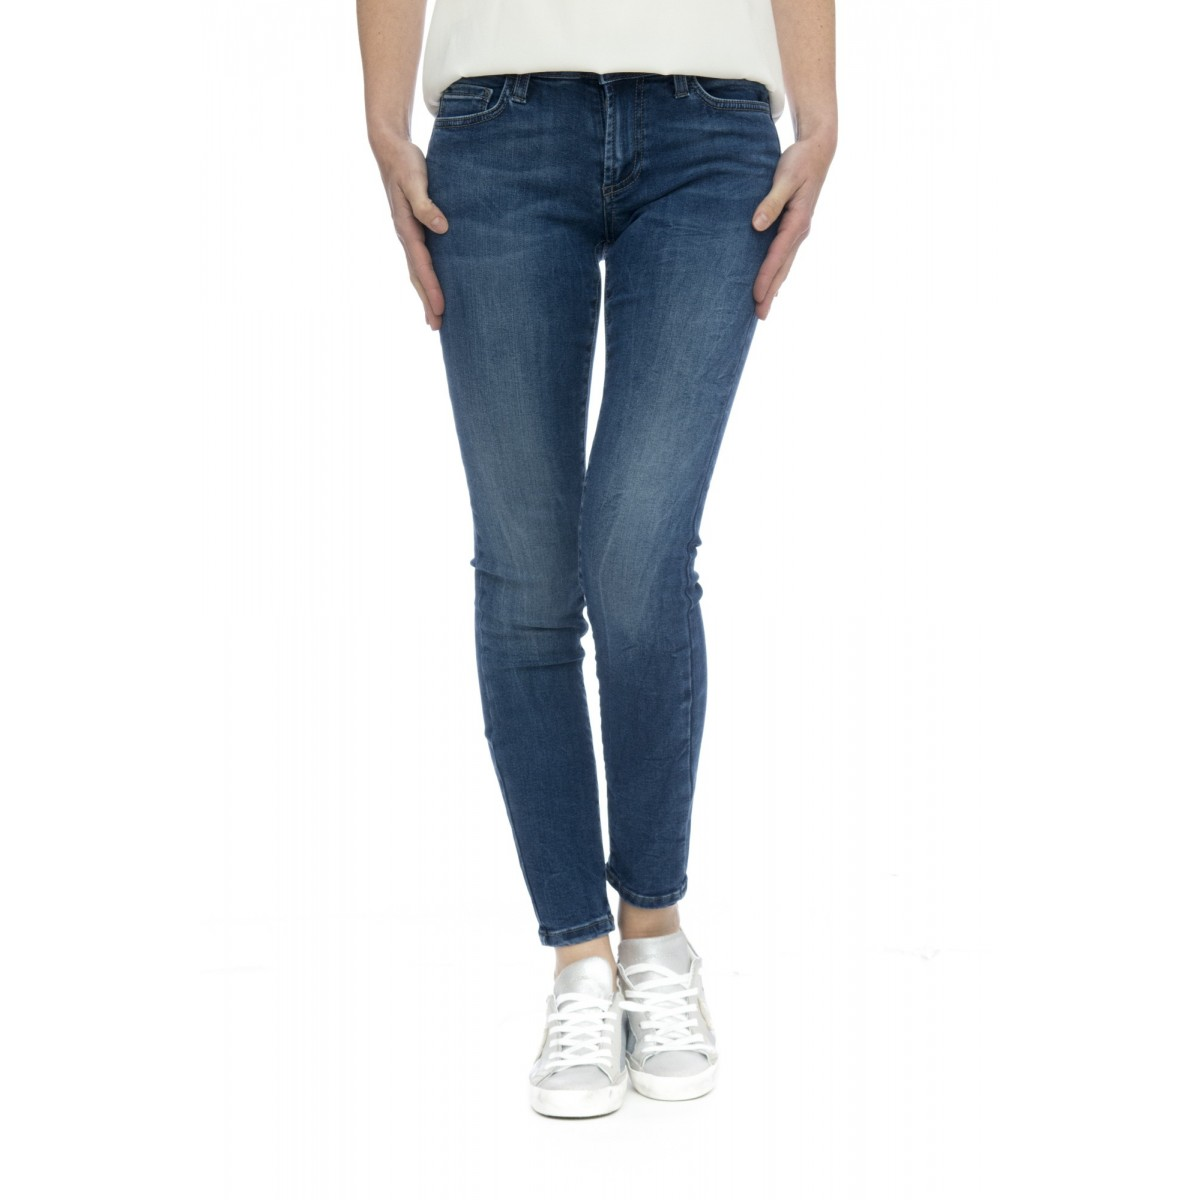 Jeans - Ate muse strech skinny